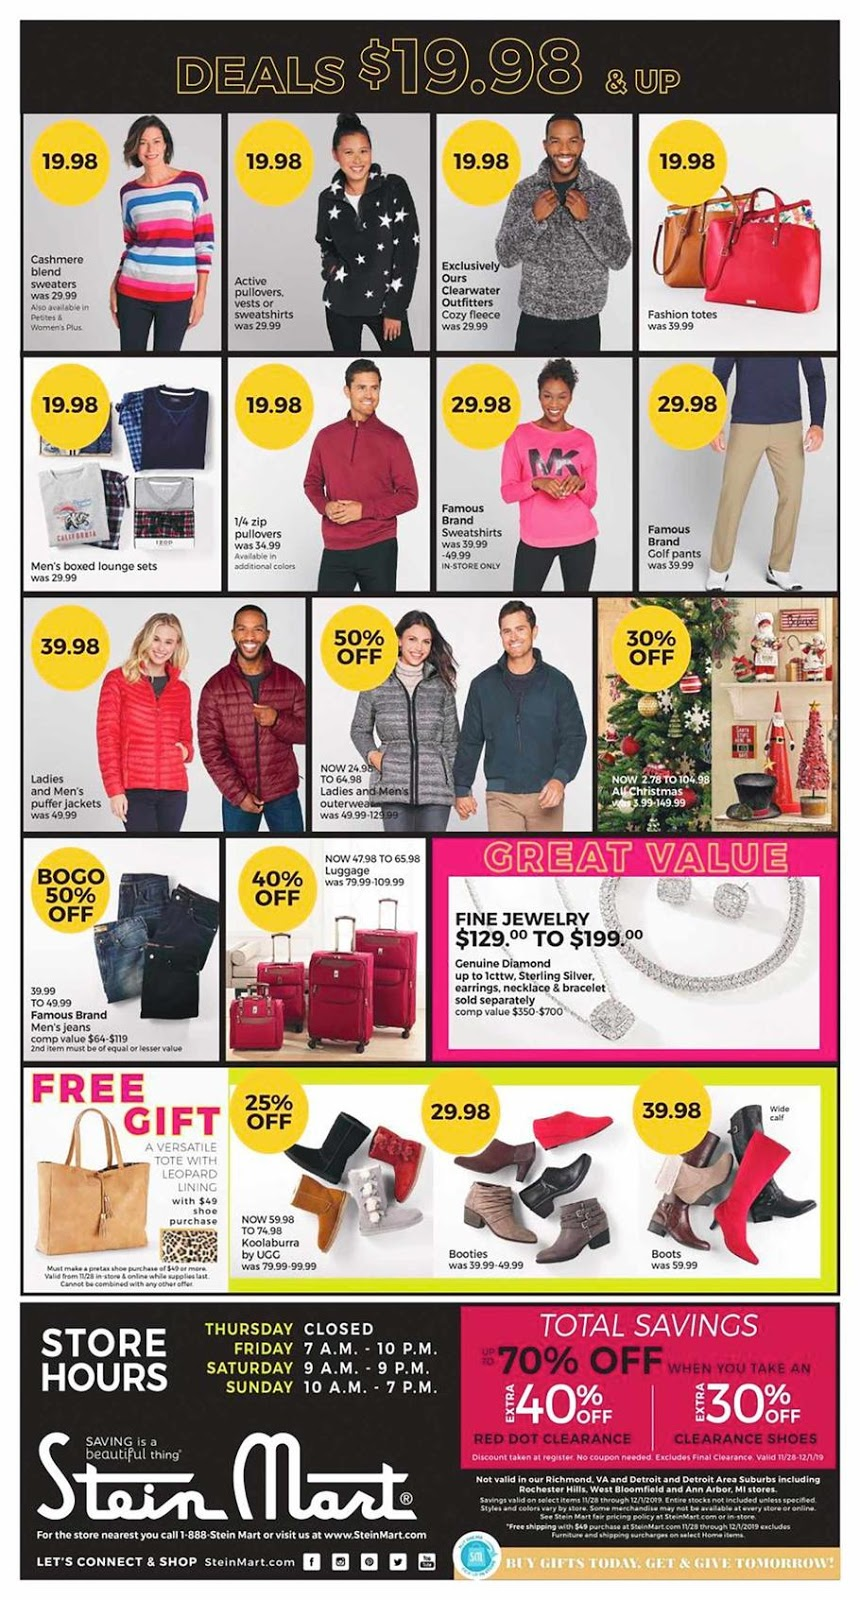 Stein Mart Black Friday 2019 Page 2